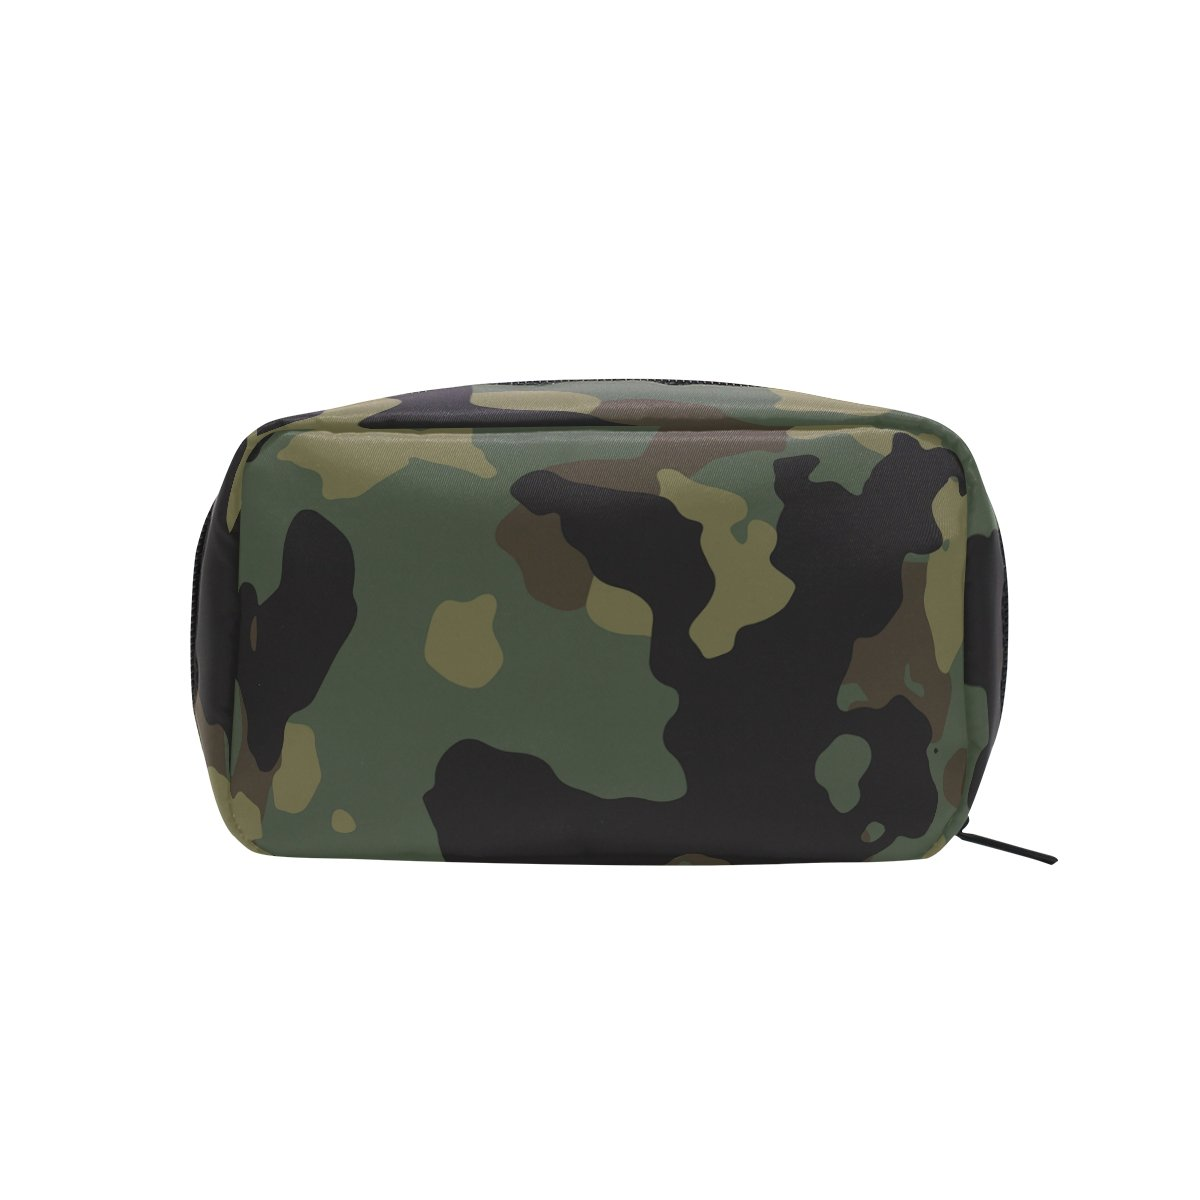 Military Camo Camouflage Pattern Print Makeup Bag Multi Compartment Pouch Storage Cosmetic Bags